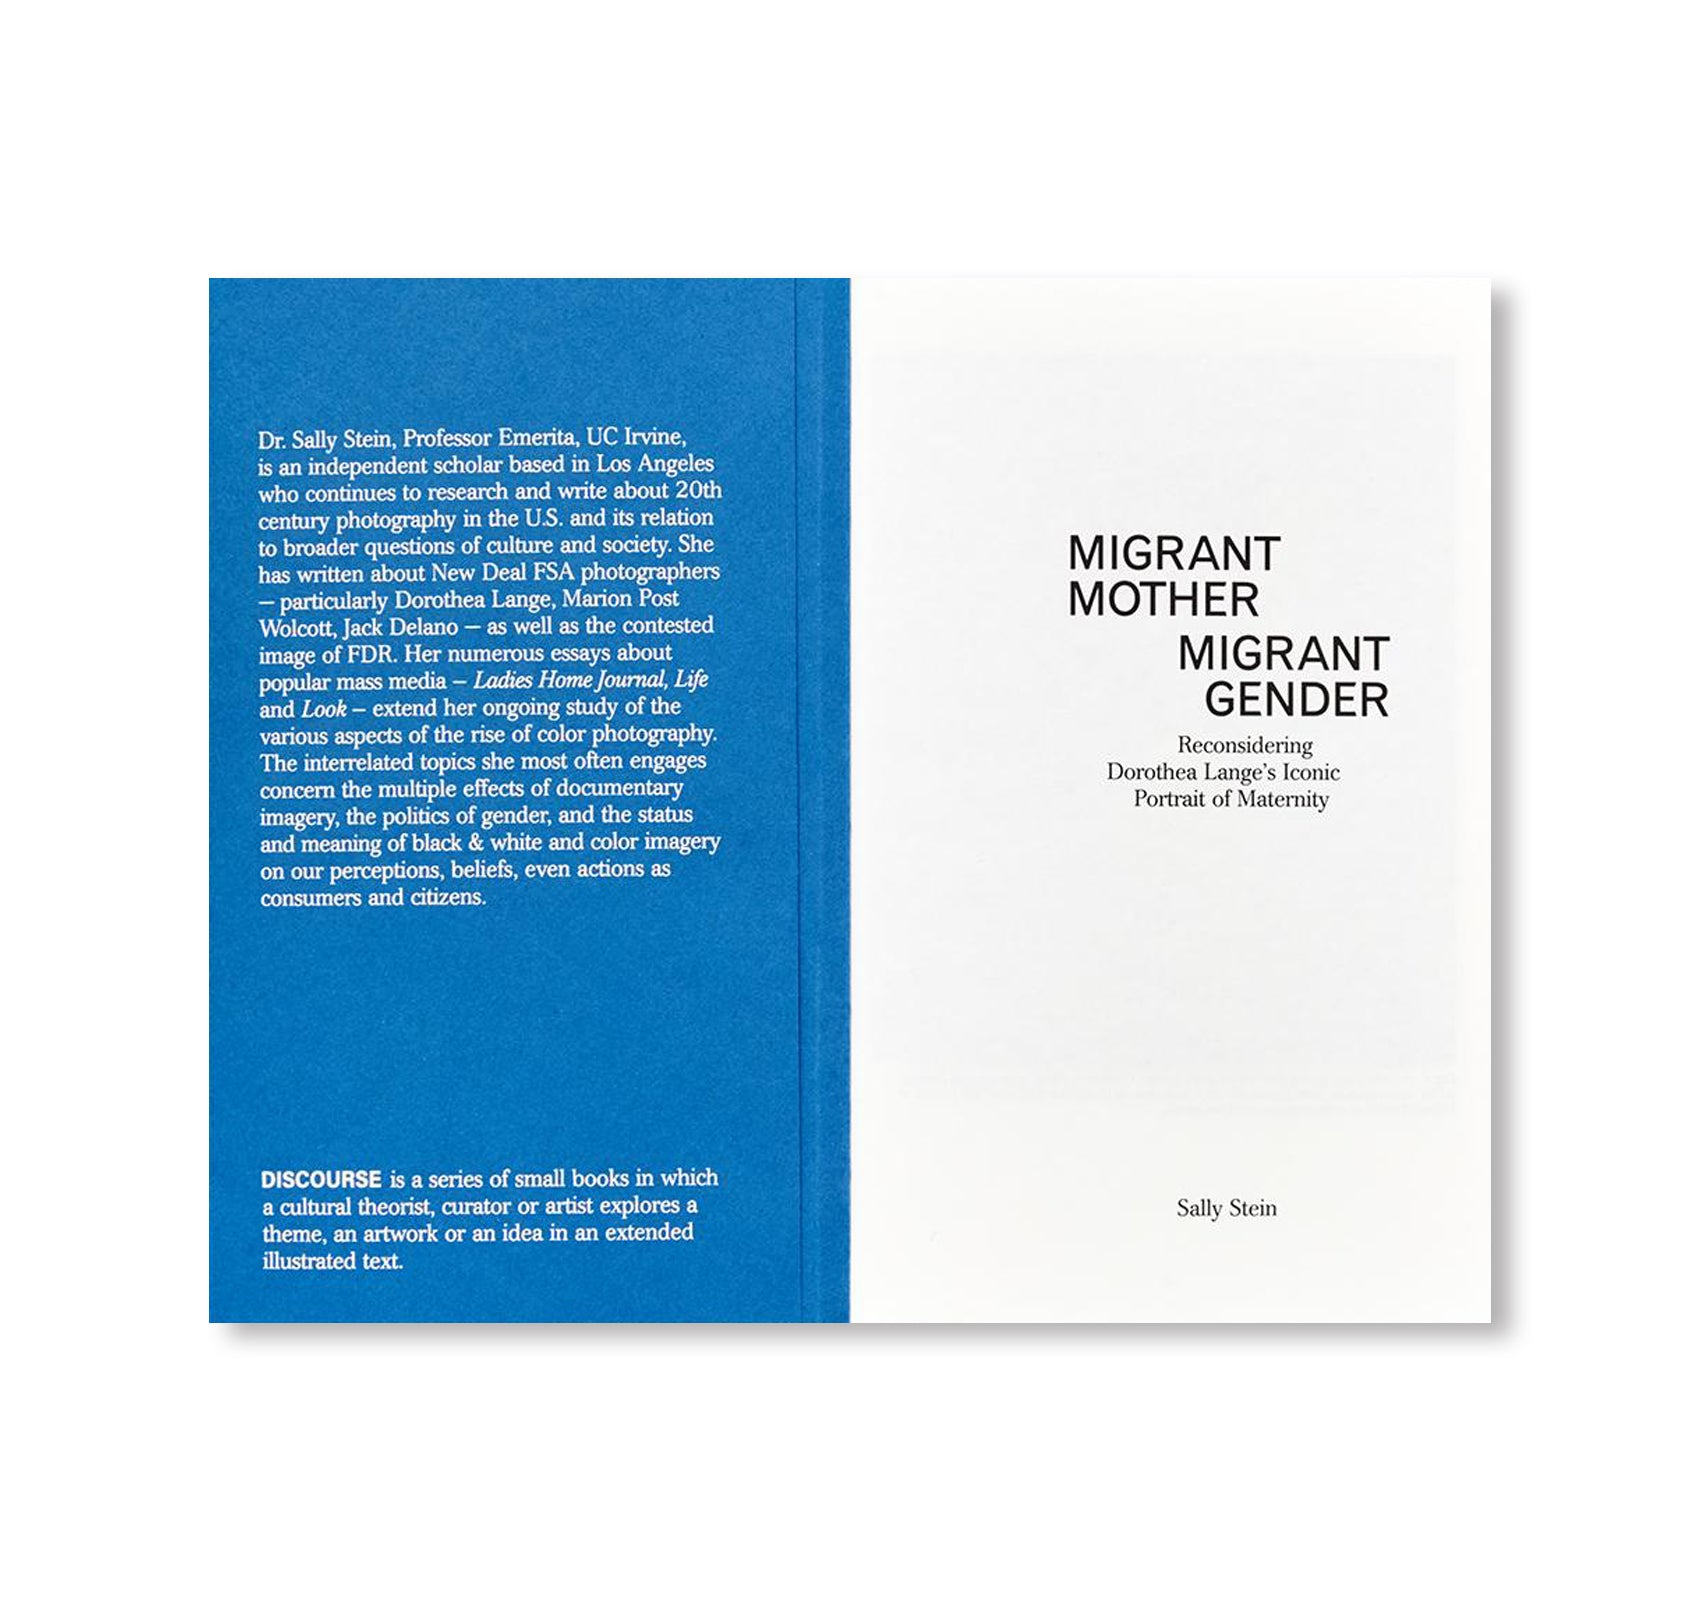 MIGRANT MOTHER, MIGRANT GENDER by Sally Stein